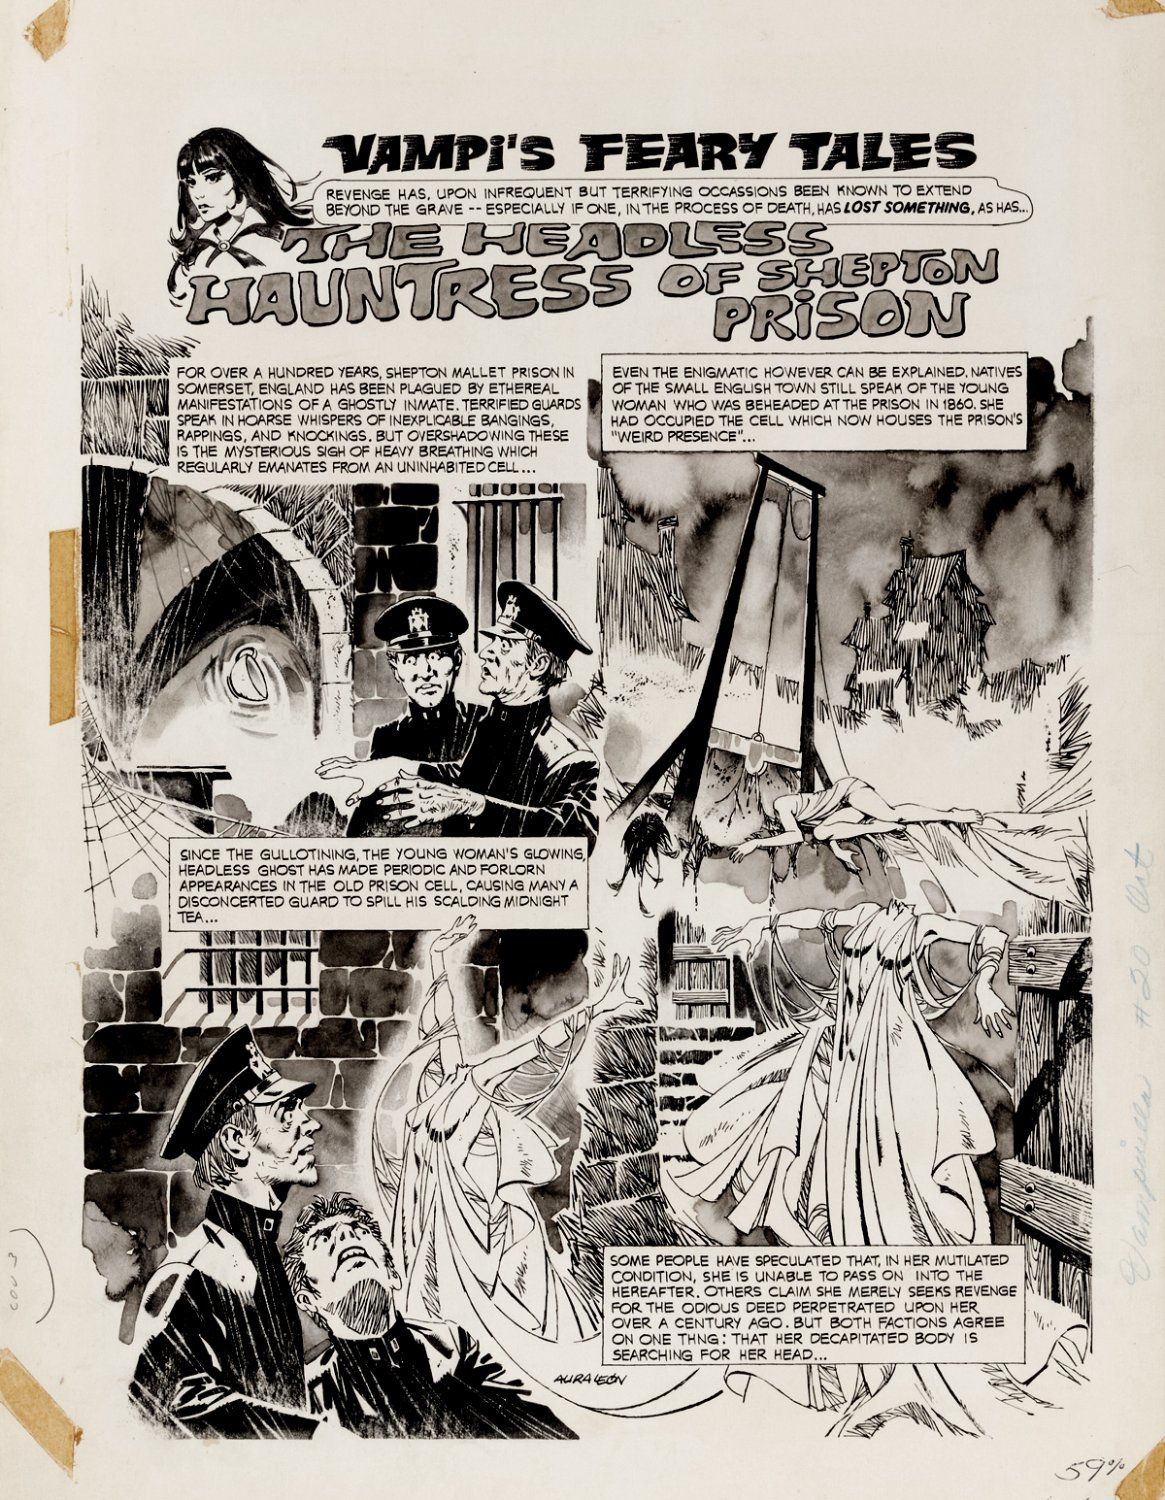 Vampirella #20 Inside Back Cover (3 DECAPITATED WOMEN FROM GUILLOTINE!) Large Art - 1972